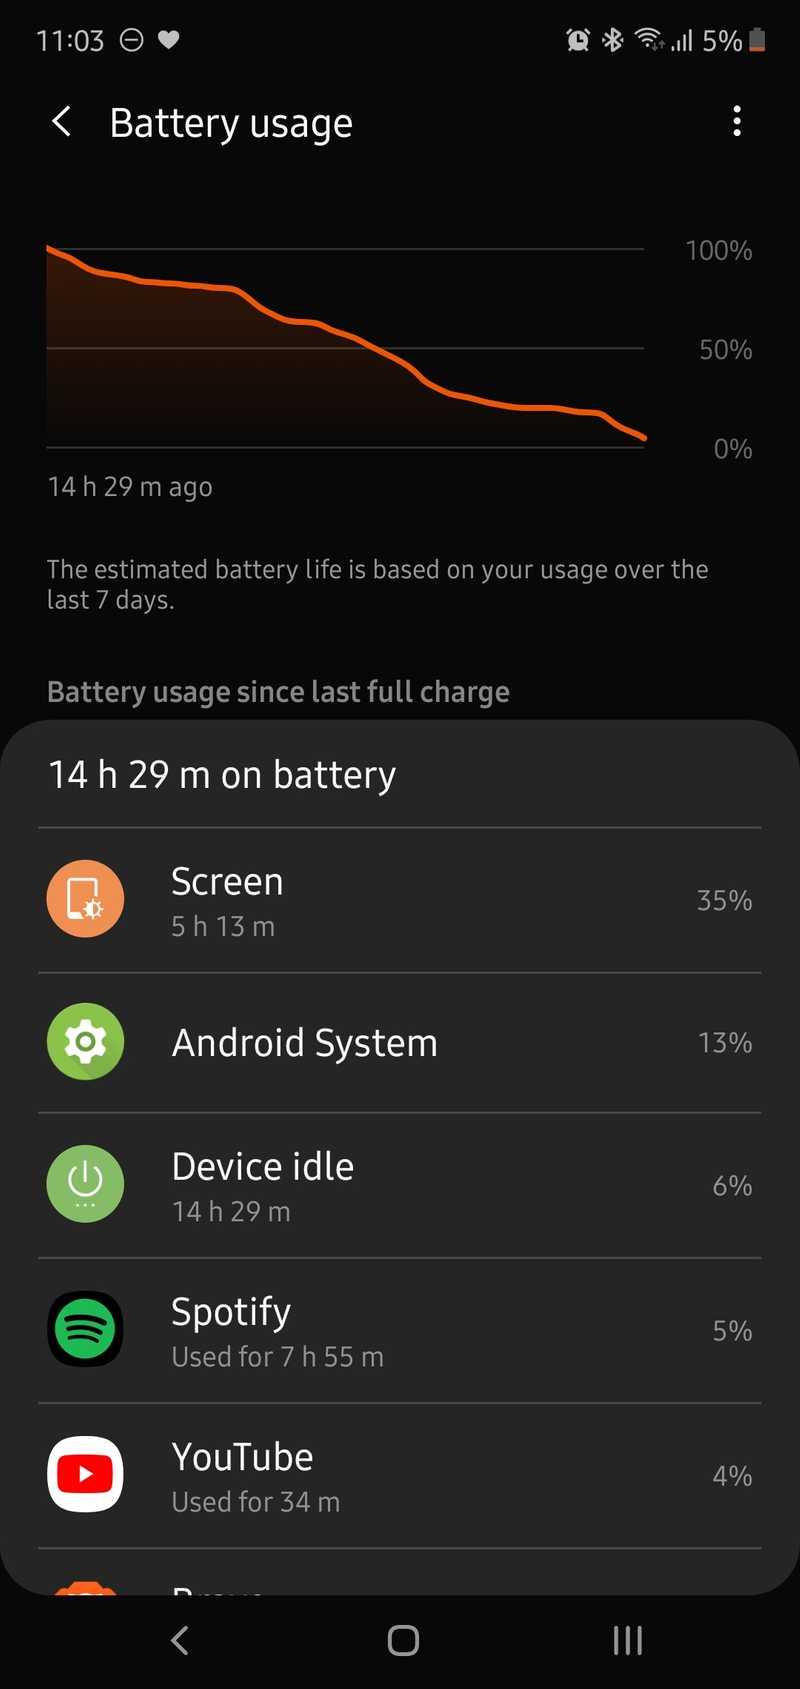 14 hours and 29 minutes on battery with 5 hours and 13 minutes of screen on time